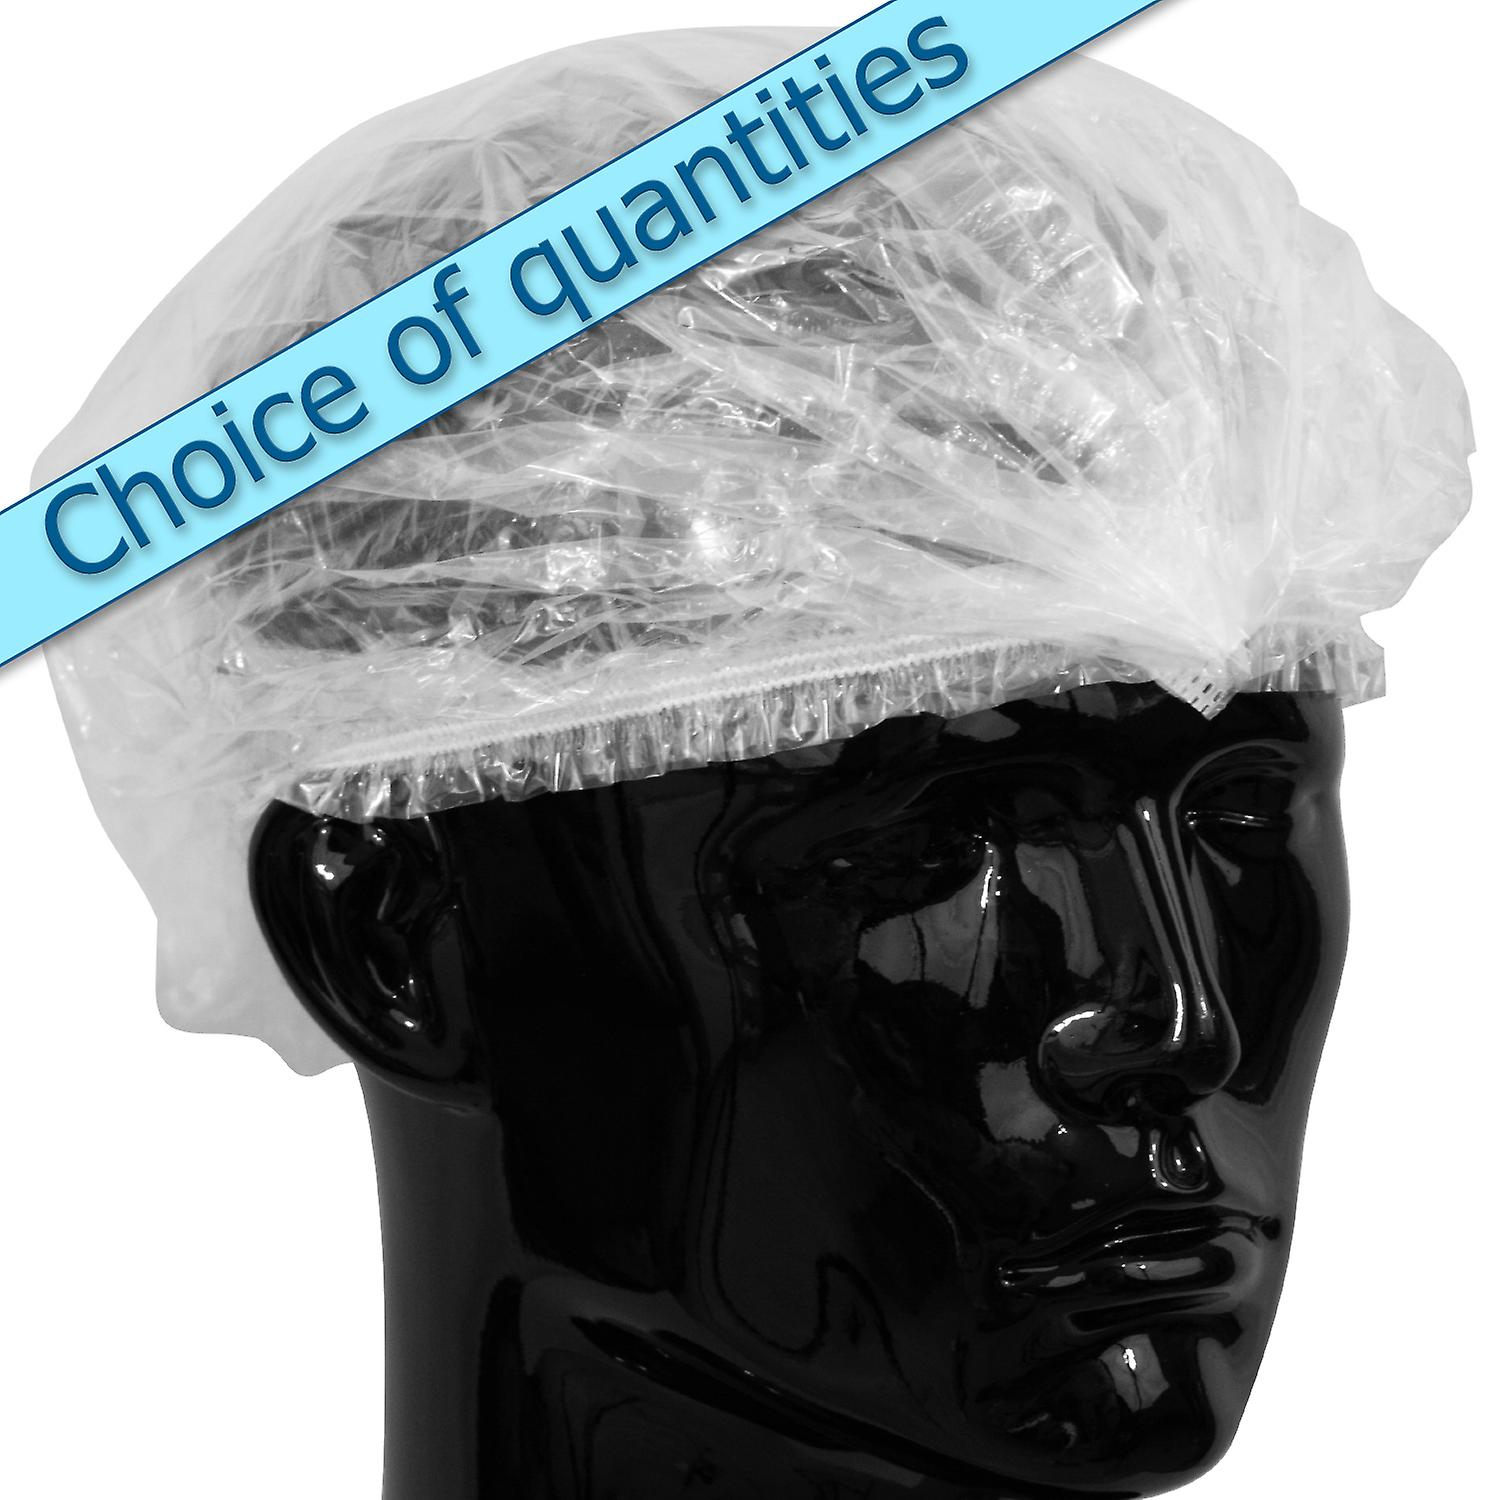 100 x Simply Direct Disposable Waterproof Shower Caps. Transparent Elasticated Generous Fitting Bath caps. Individually Bagged.